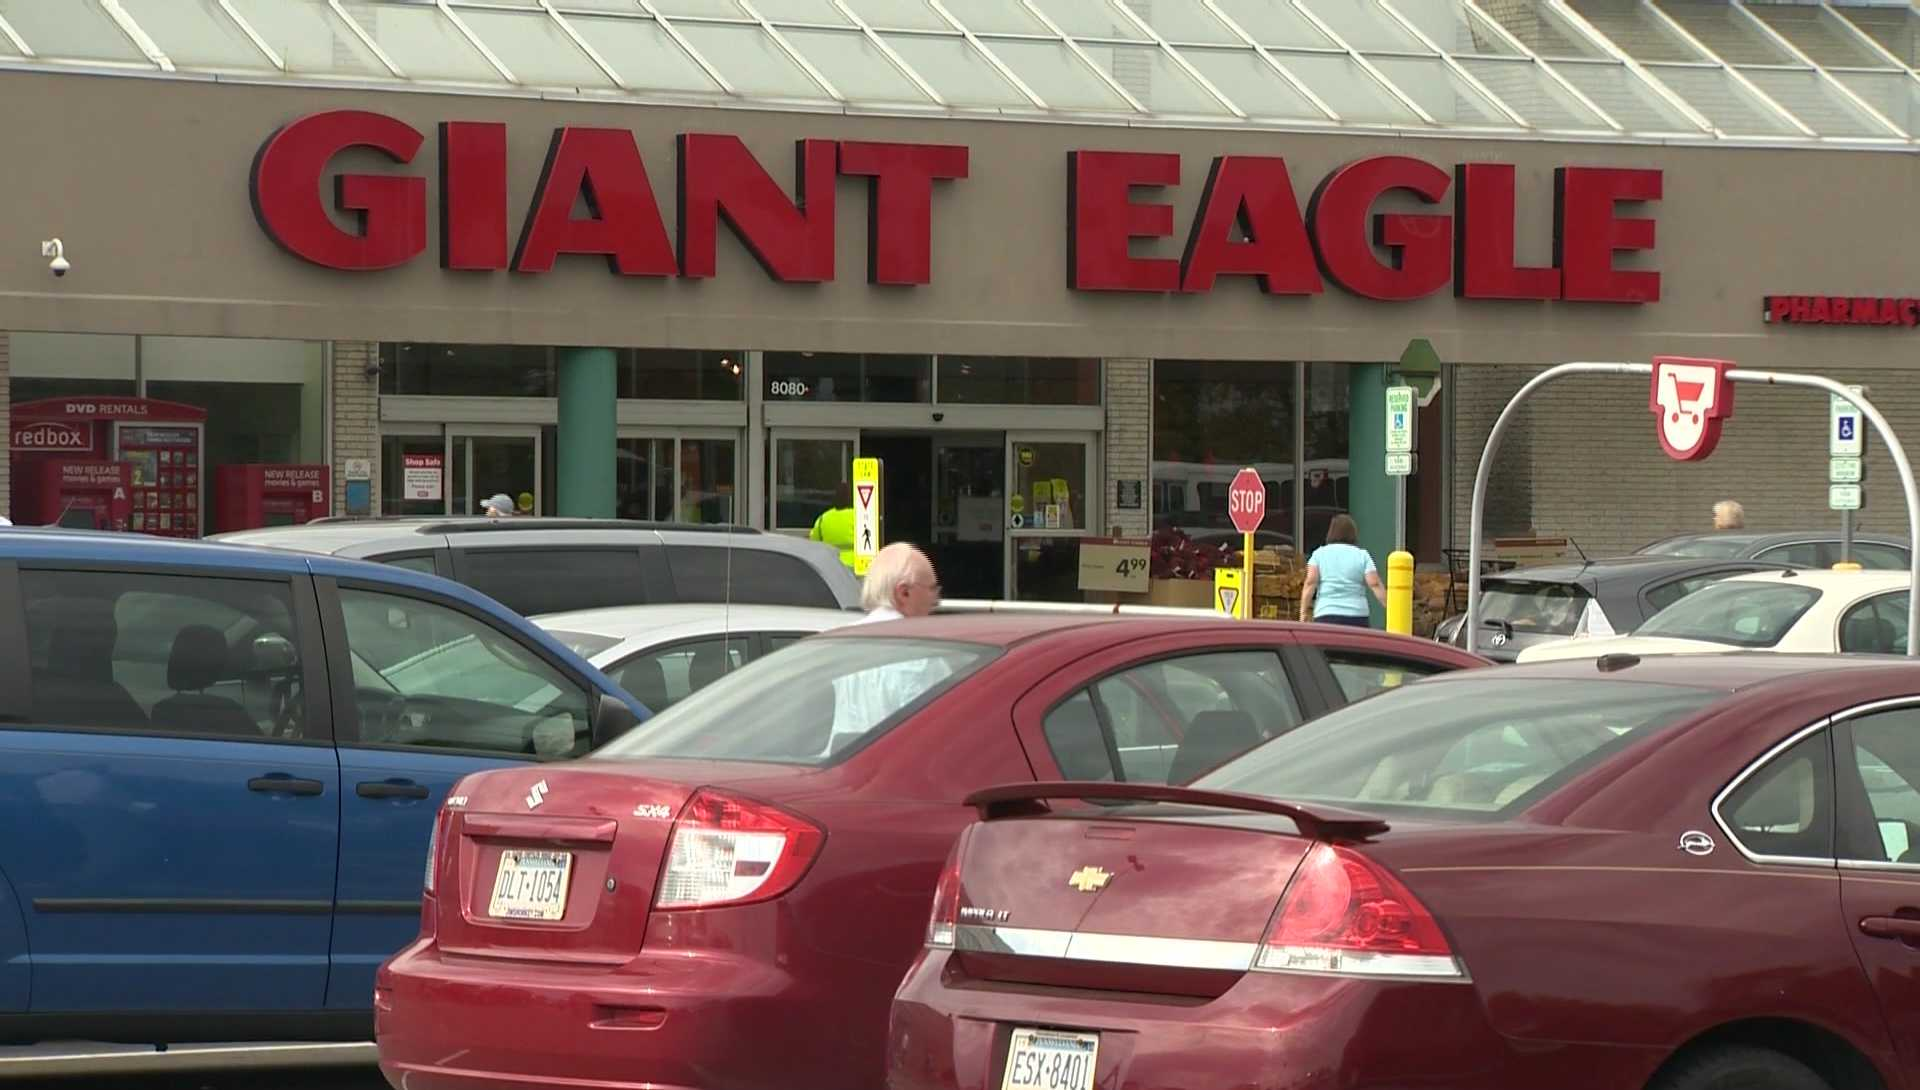 Giant Eagle is hiring for more than 500 open jobs